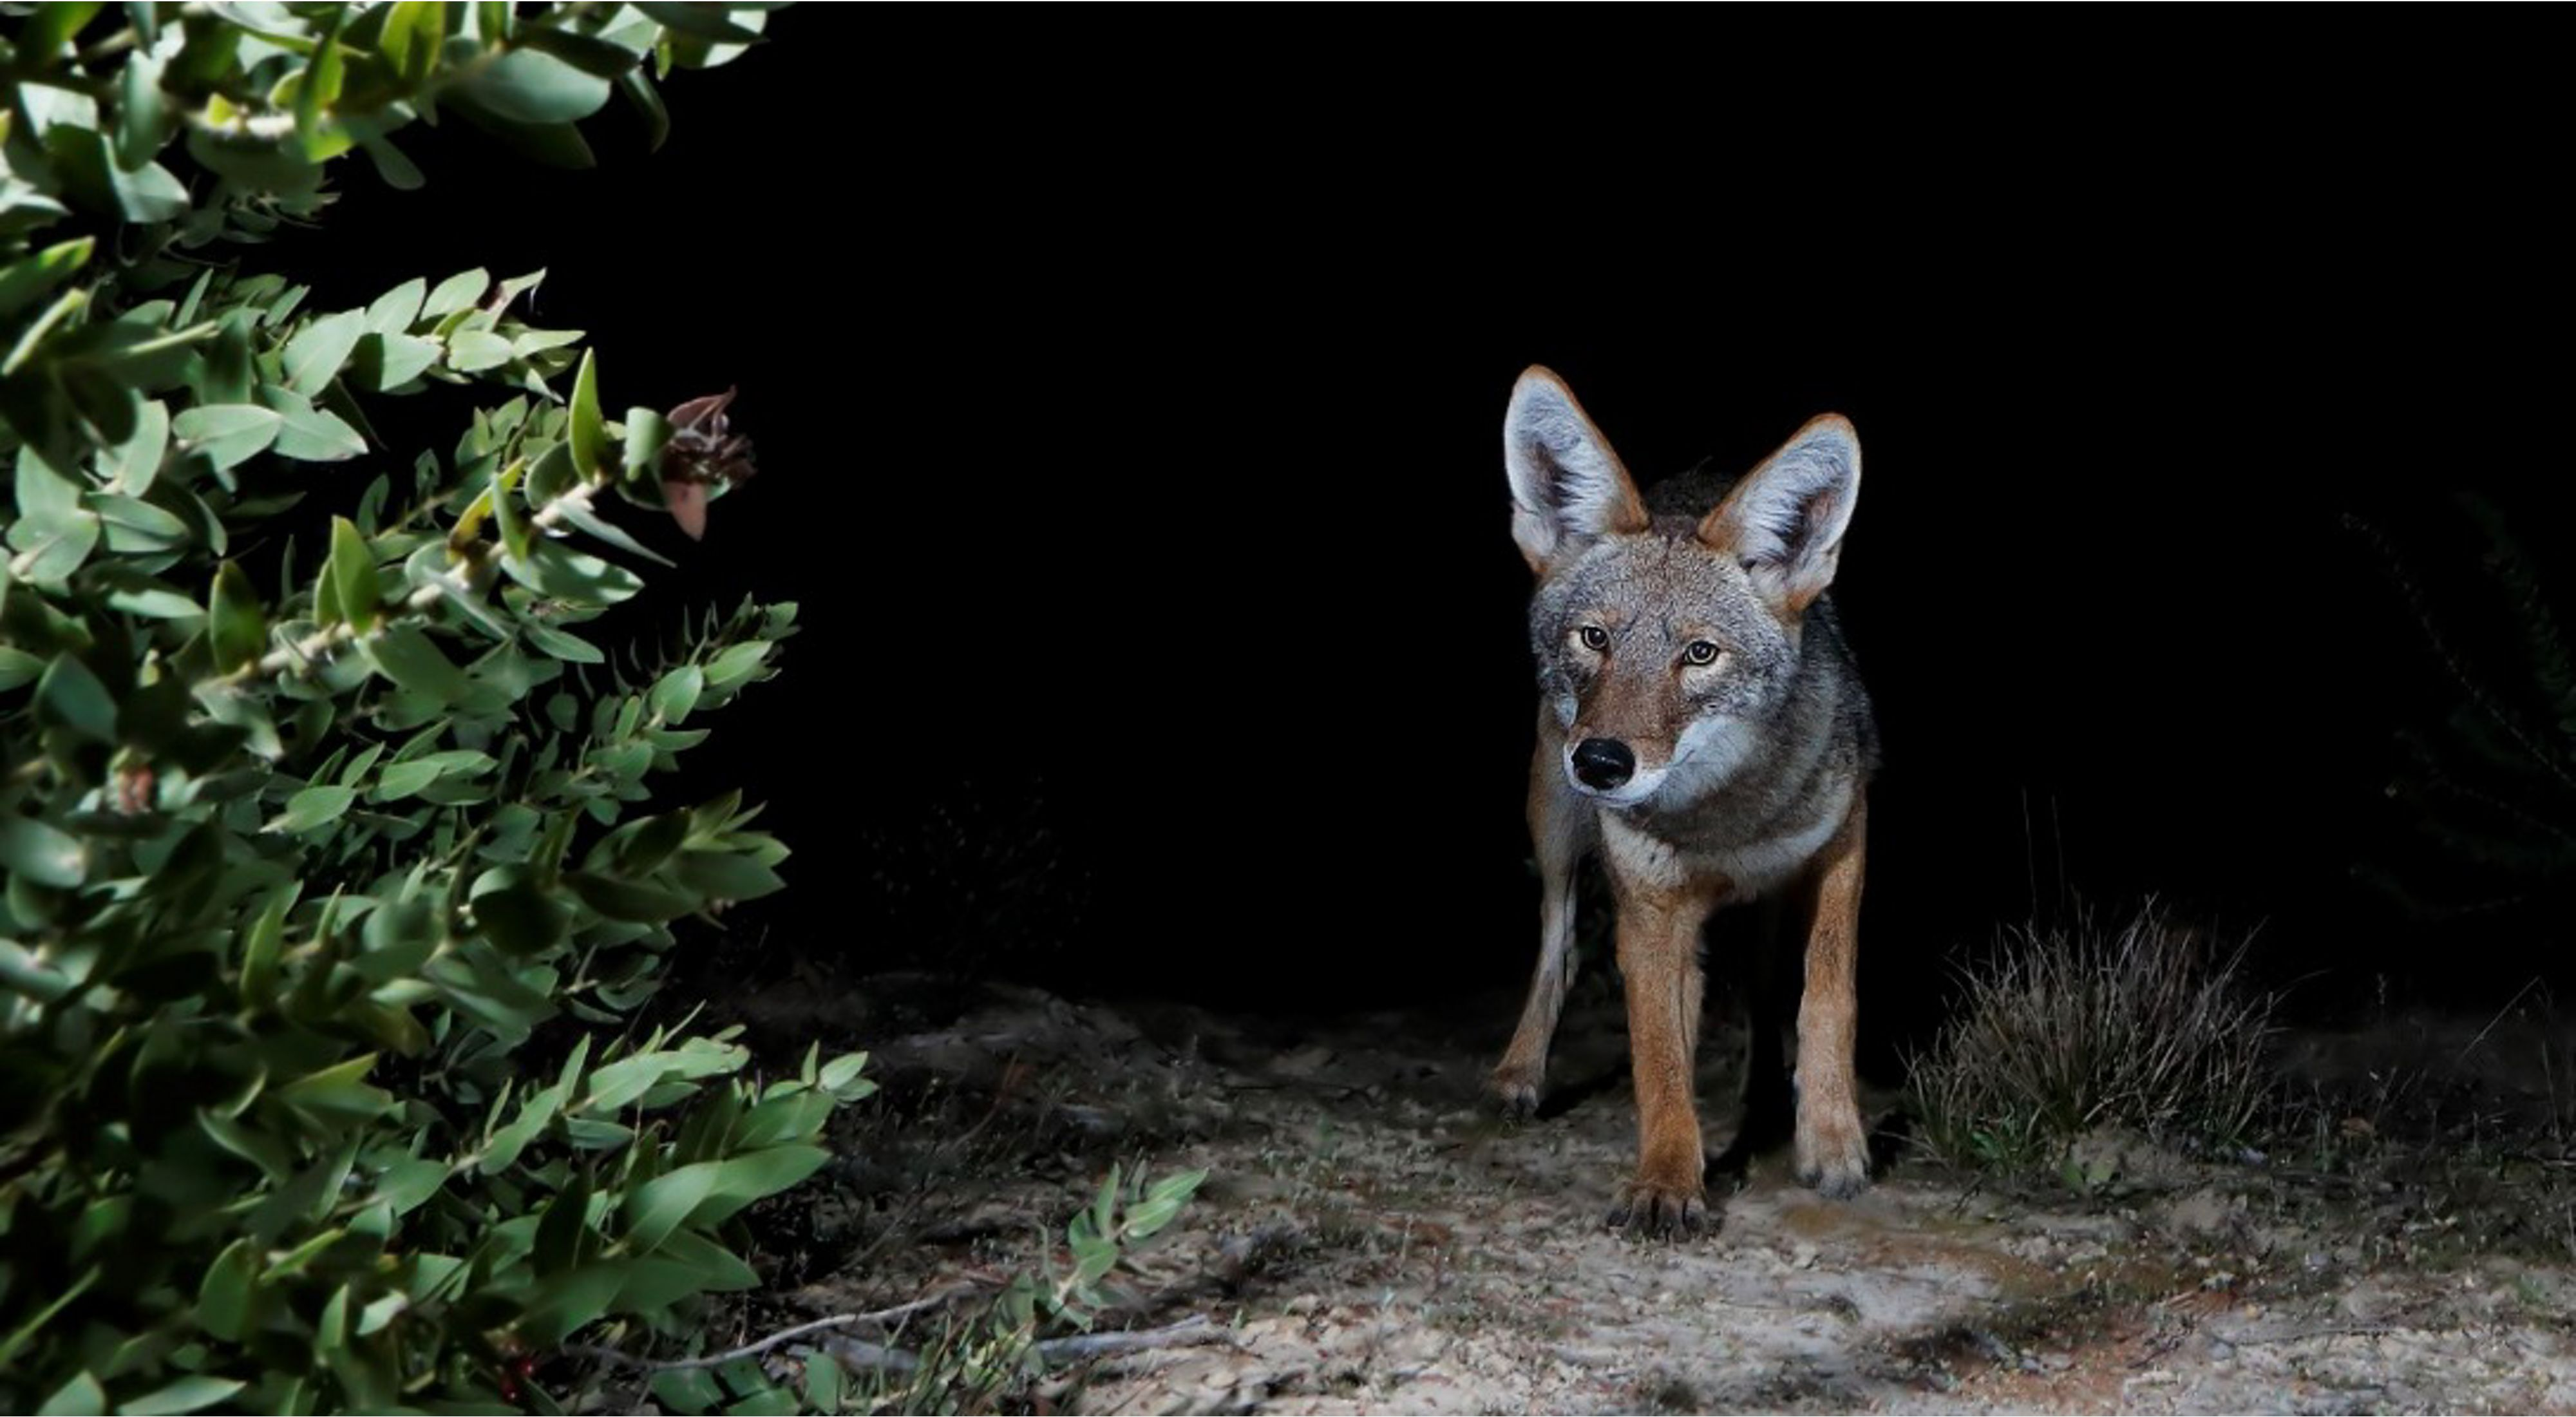 In the upland area of our Dangermond Preserve, we were able to capture one of our most common predators, a Coyote (Canis latrans).